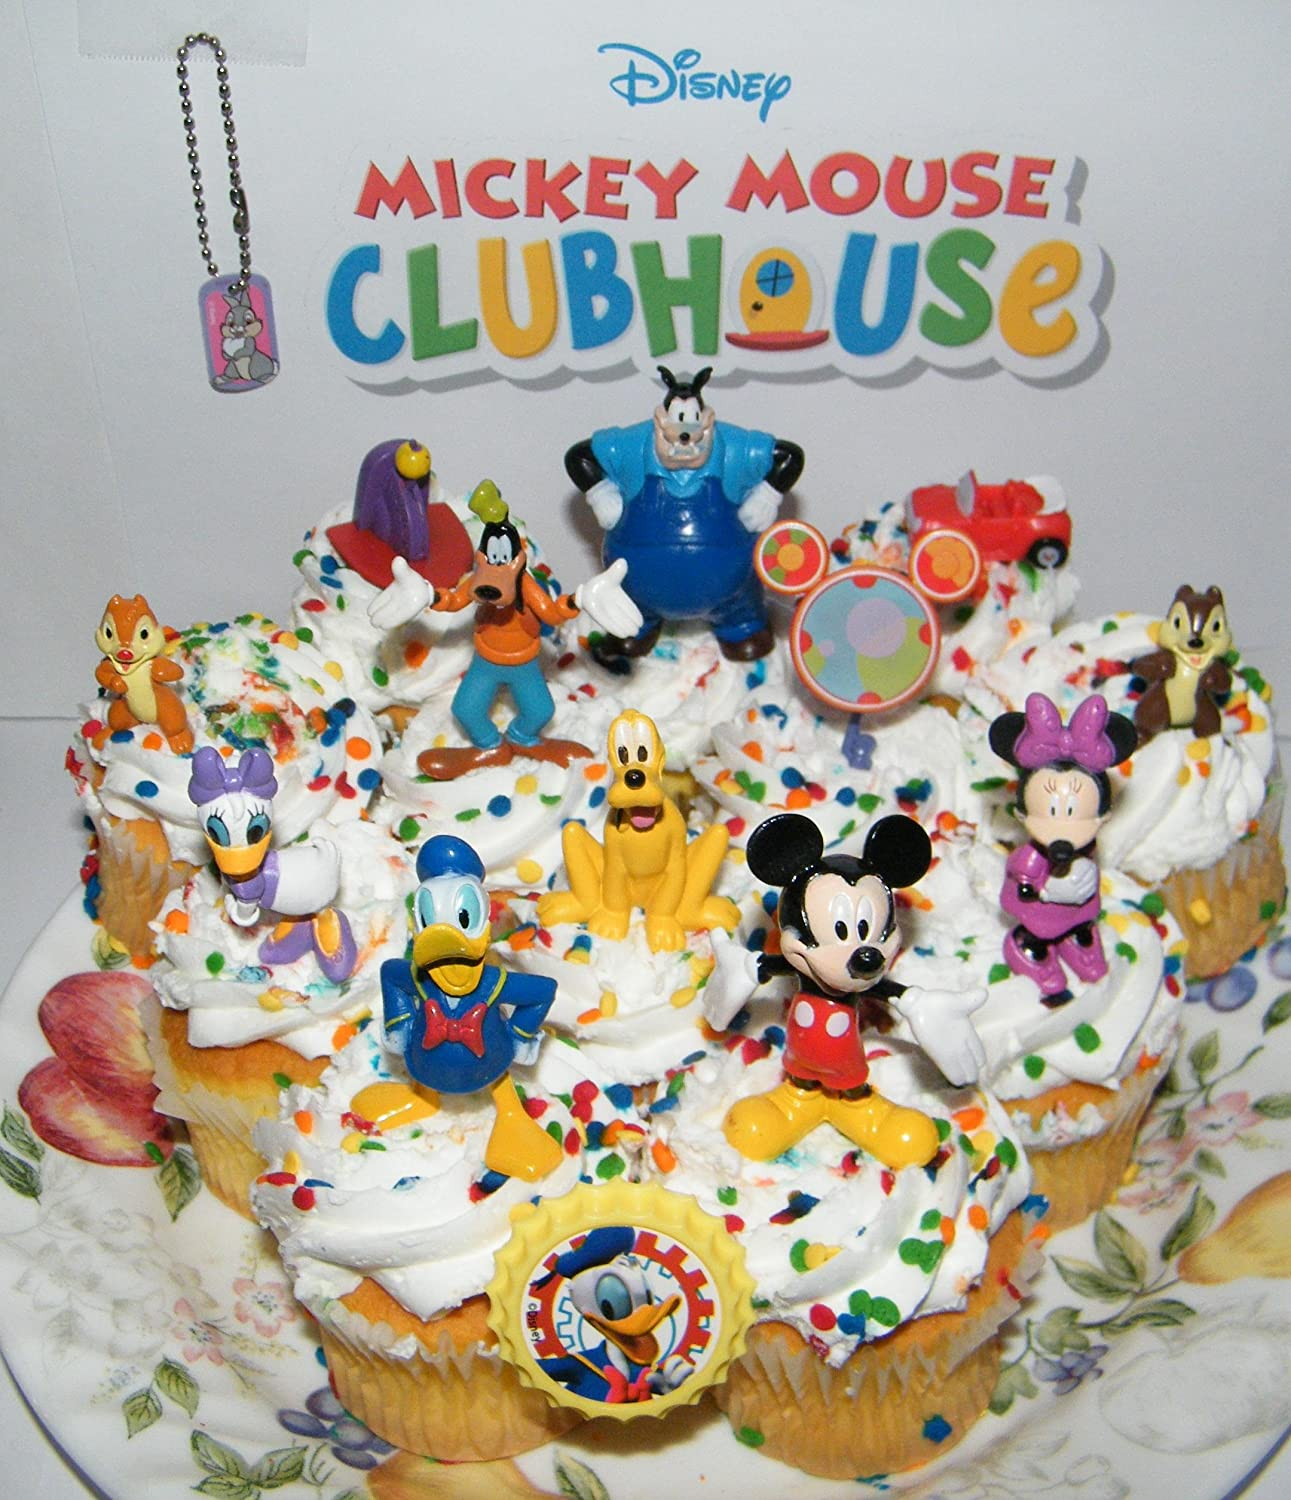 Disney Mickey Mouse Clubhouse Deluxe Mini Cake Toppers Cupcake Decorations Set Of 14 With Figures A Dog Tag And Toy Ring Daffy Minnie